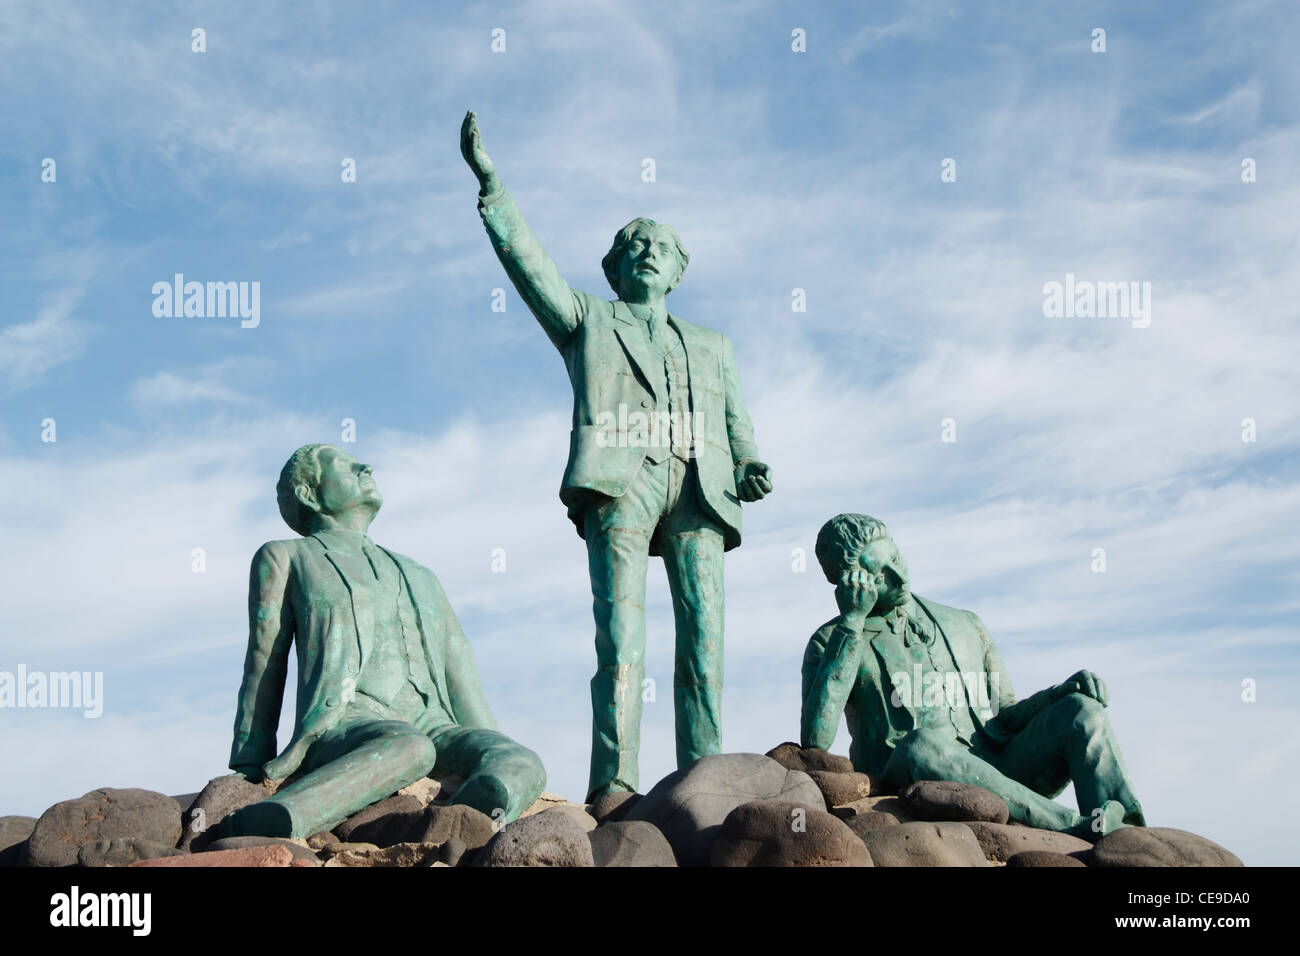 Sculpture of local poets in Agaete on Gran Canaria. From left: Saulo Toron, Tomas Morales and Alonso Quesada - Stock Image